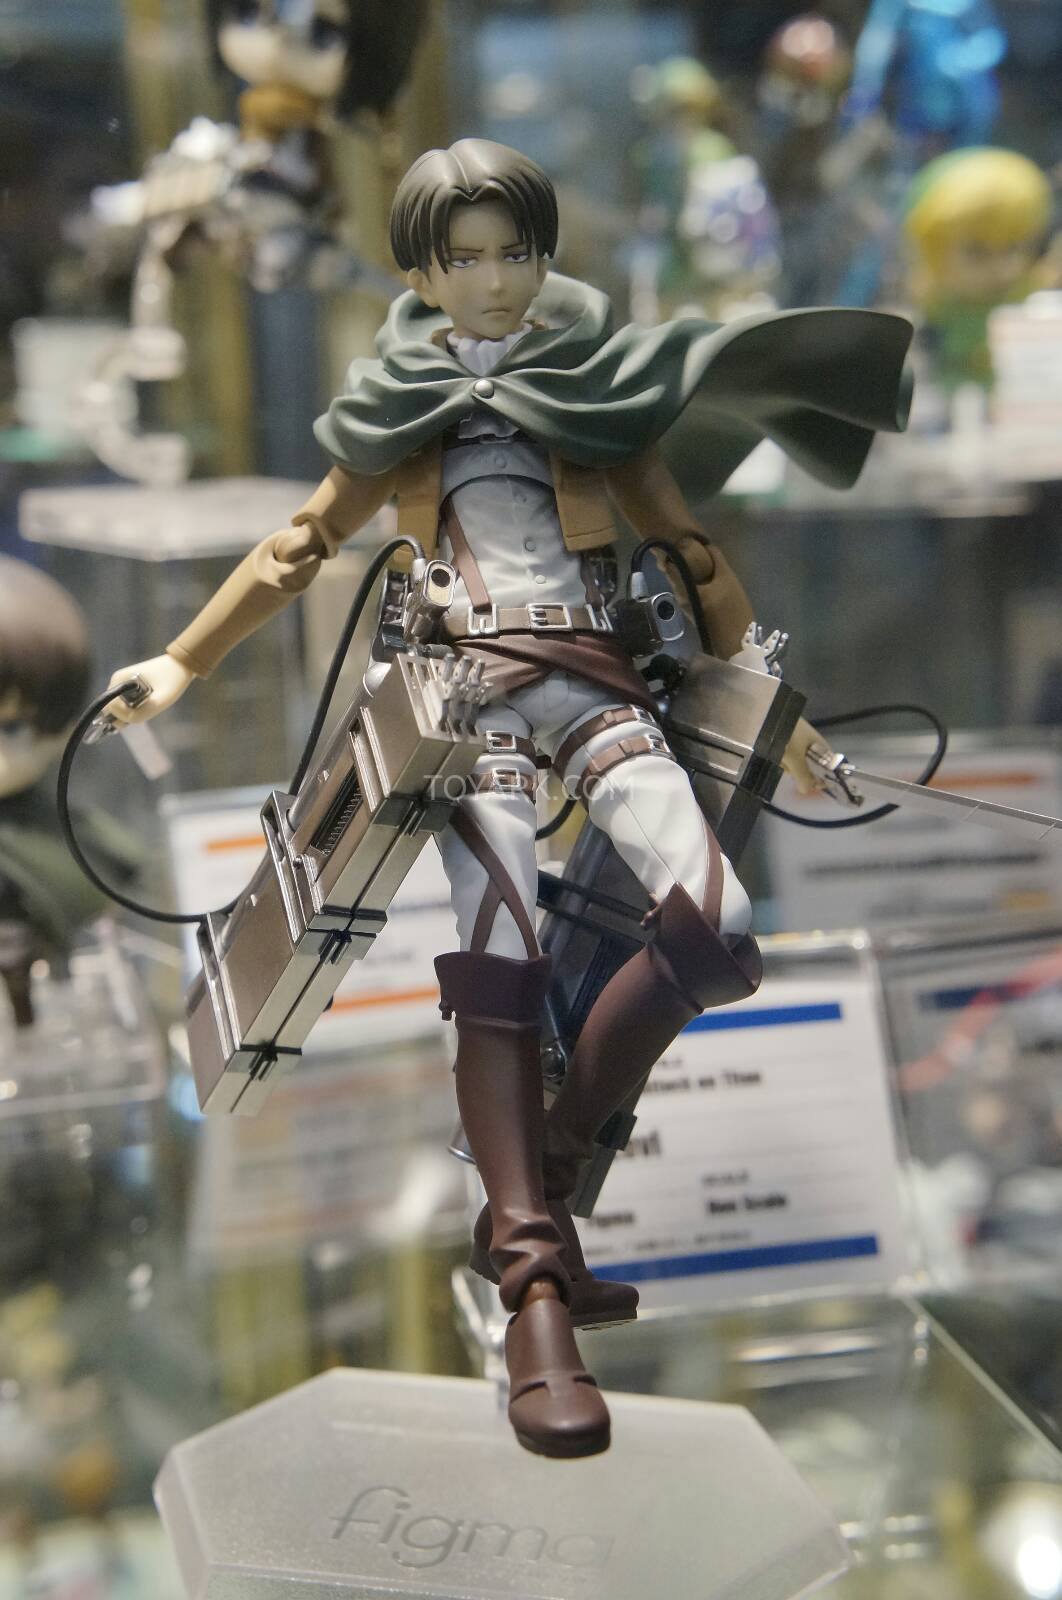 [EVENTO] Toy Fair 2014 - Good Smile Company / Max Factory / Phat Company / FREEing Toy-Fair-2014-Good-Smile-and-Max-Factory-Display-022